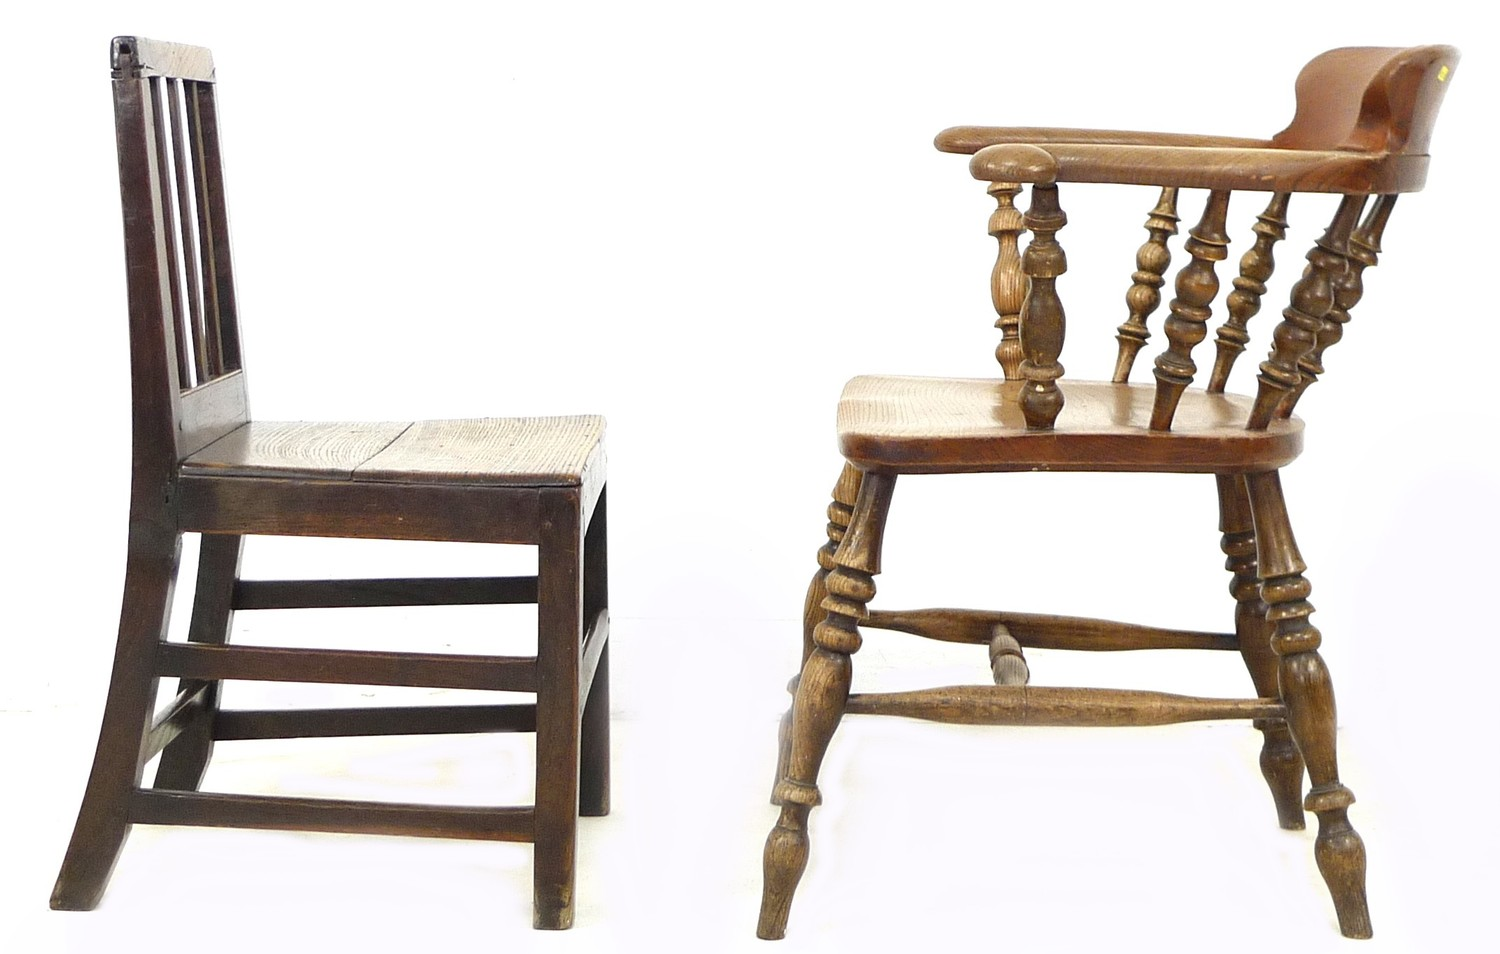 A Scandinavian oak nursery chair, with three rail back, 44 by 48 by 78cm high, together with a - Image 2 of 4